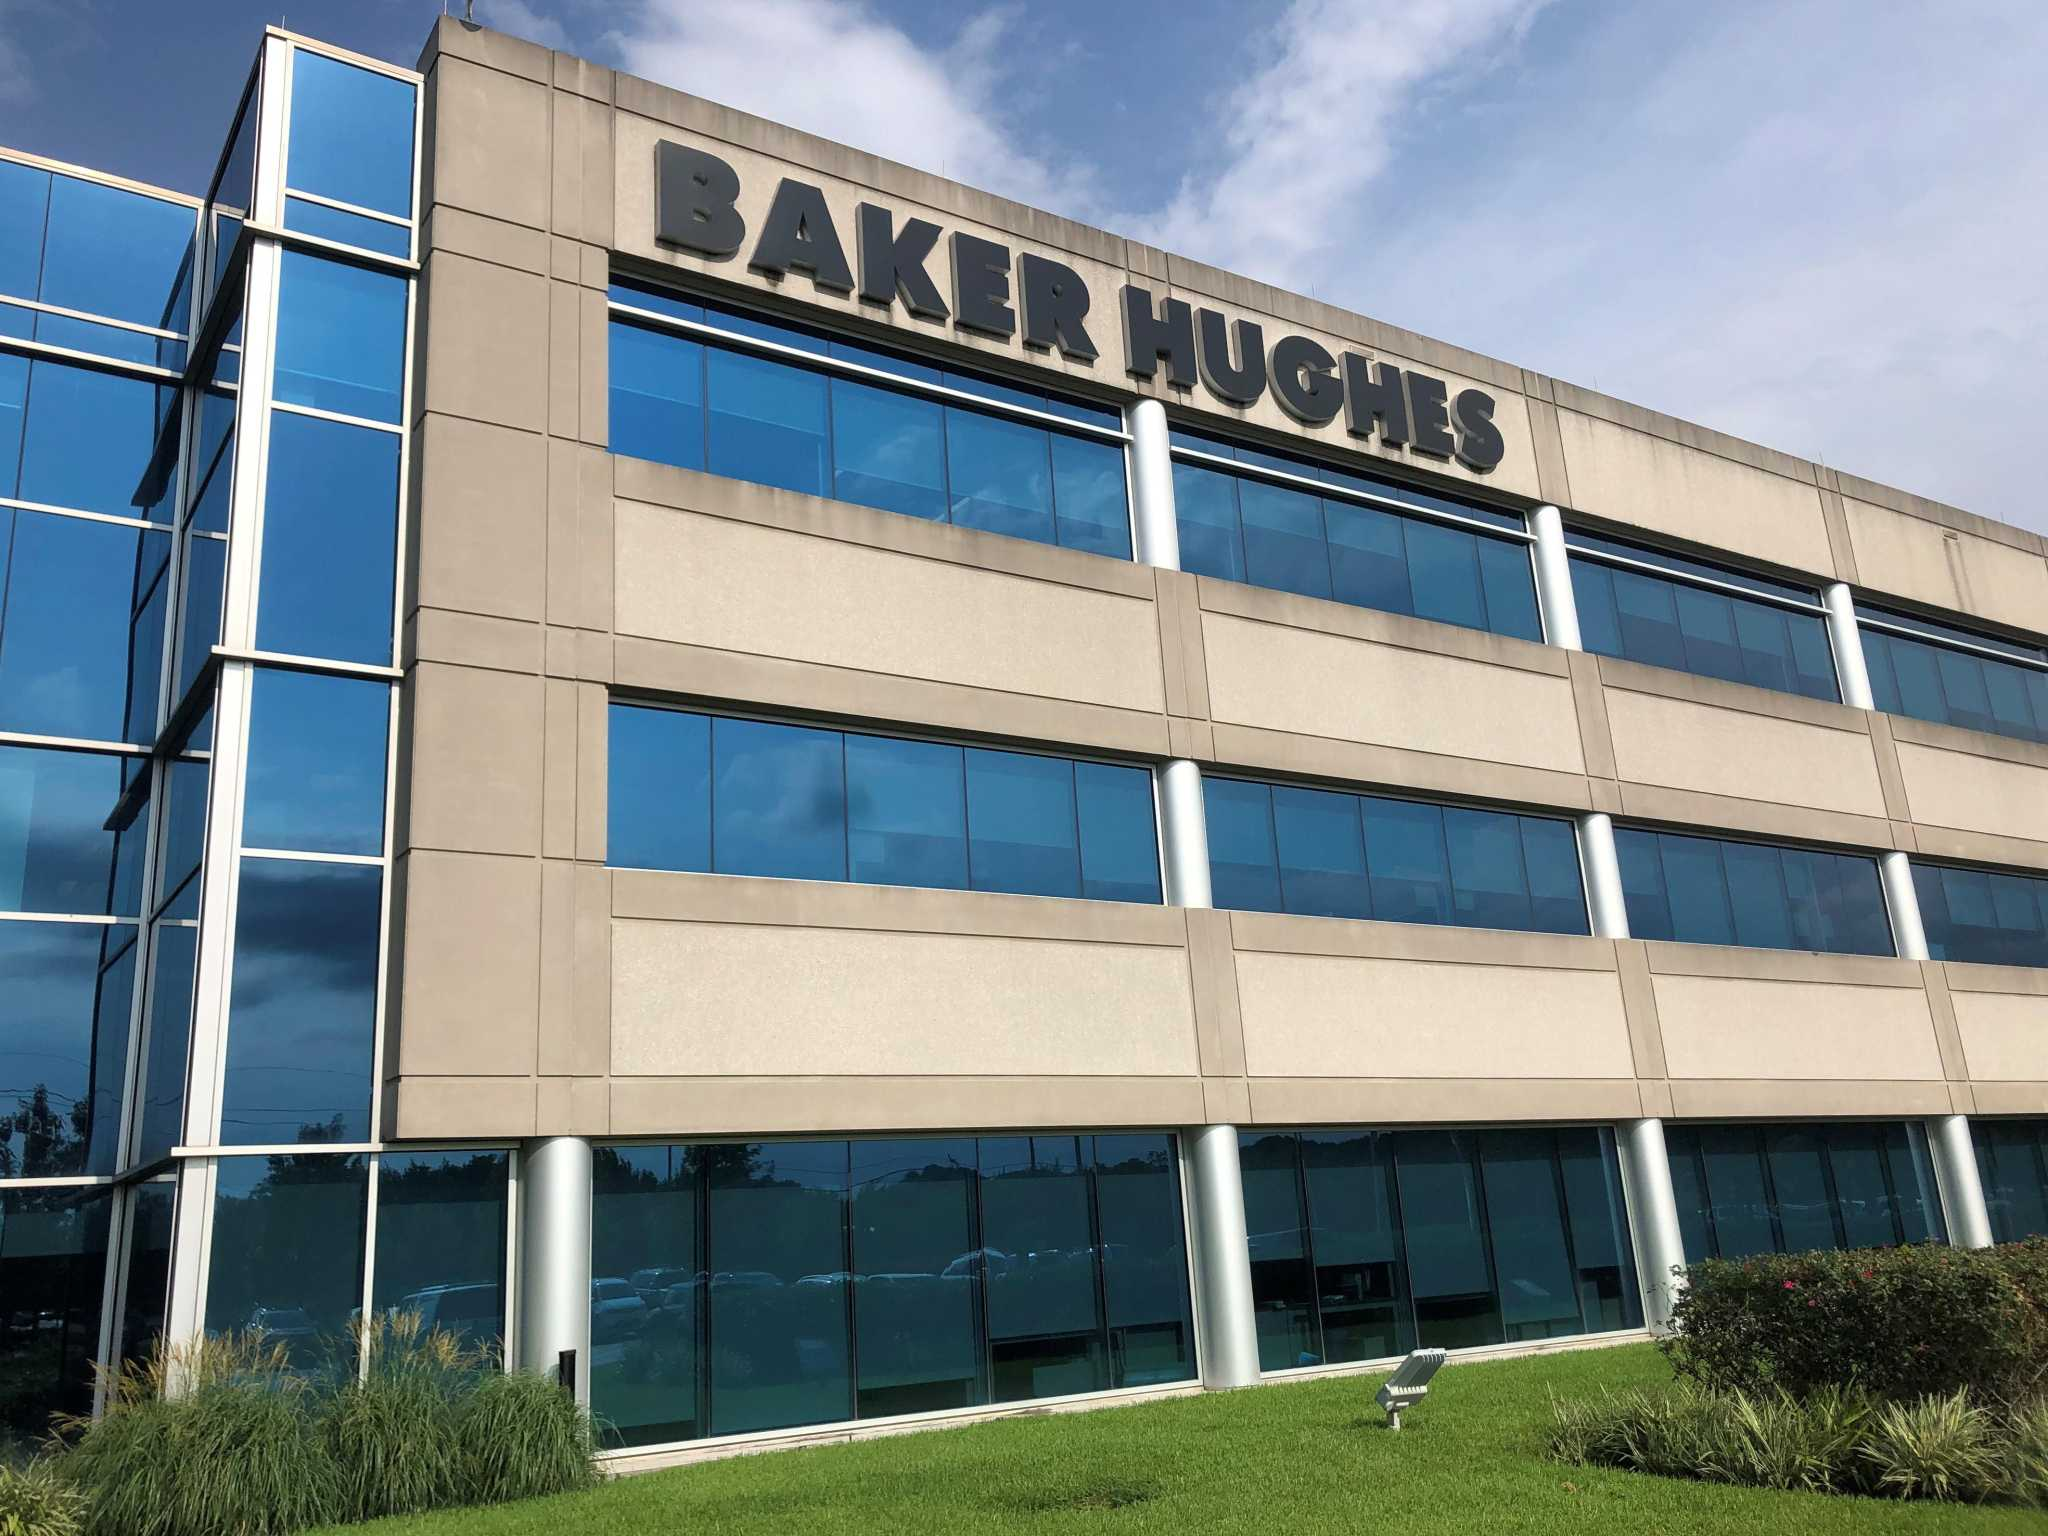 Bakers Hughes to become independent again in stock buyback